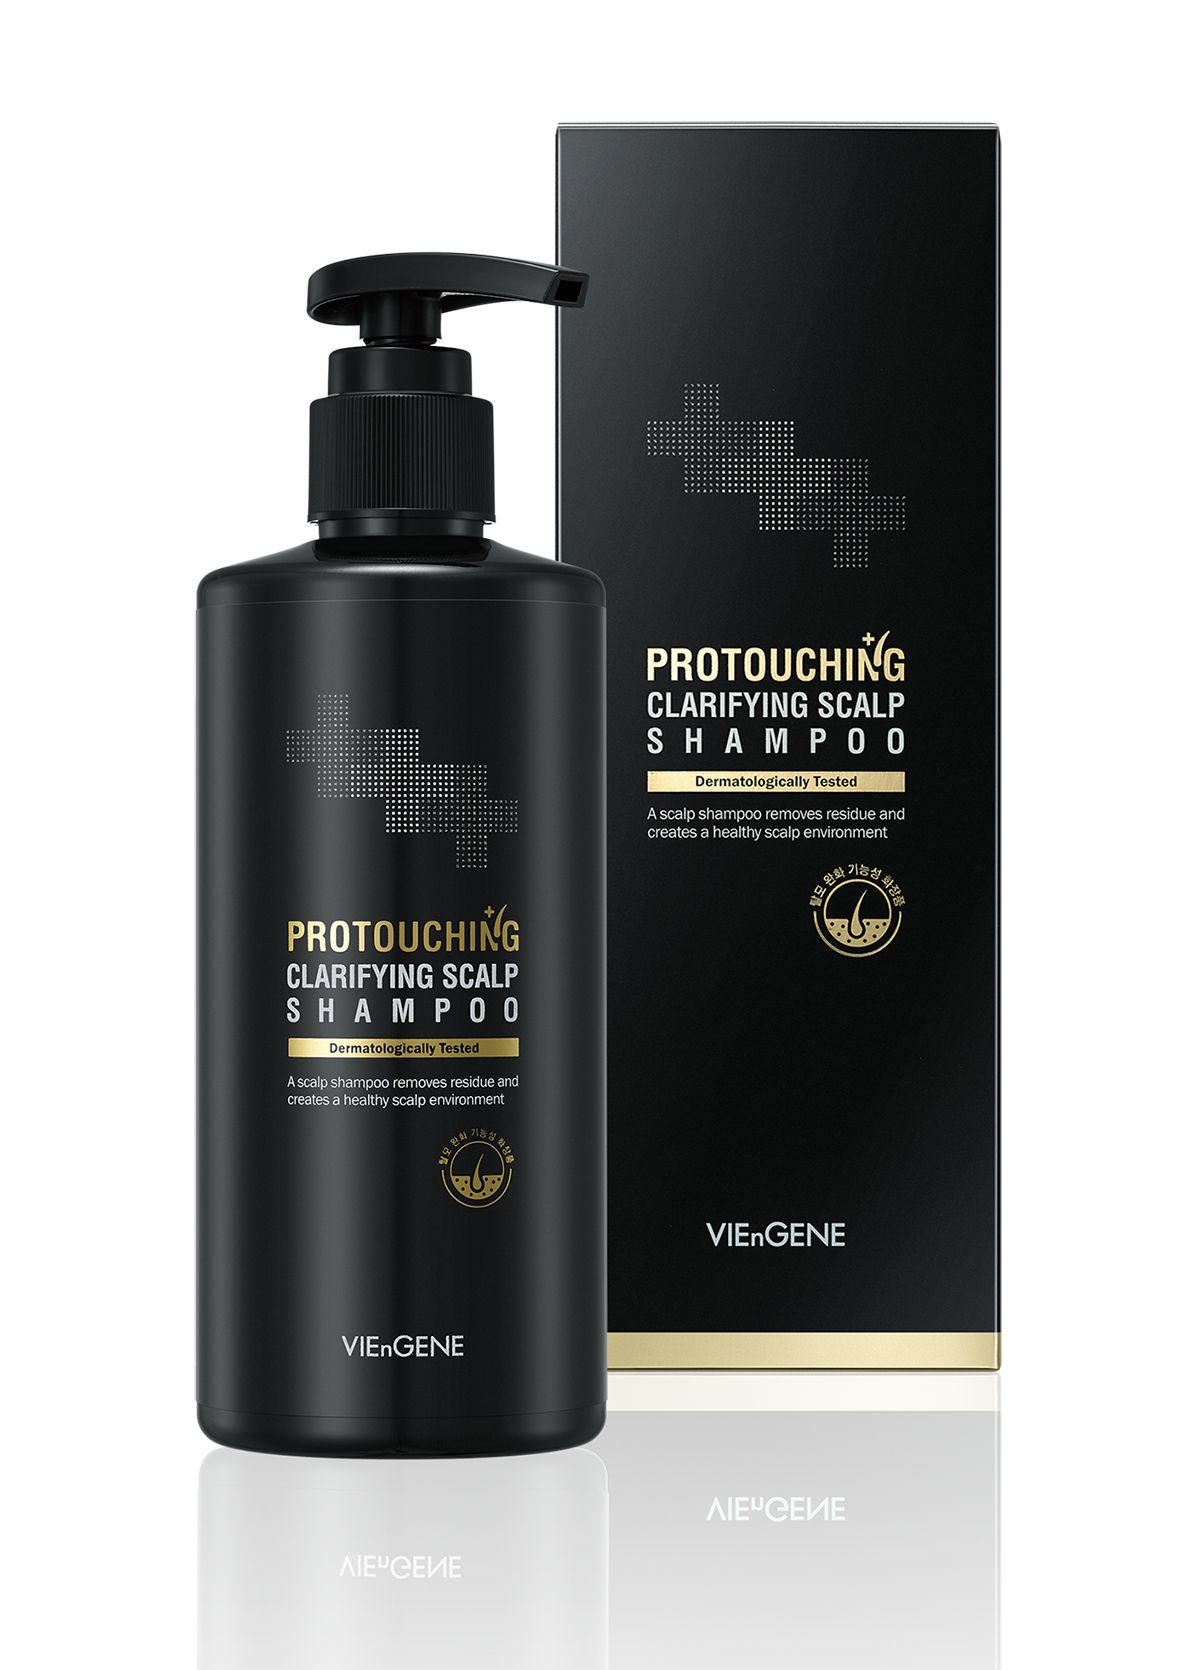 VIEnGENE Protouching Clarifying Scalp Shampoo 250ml